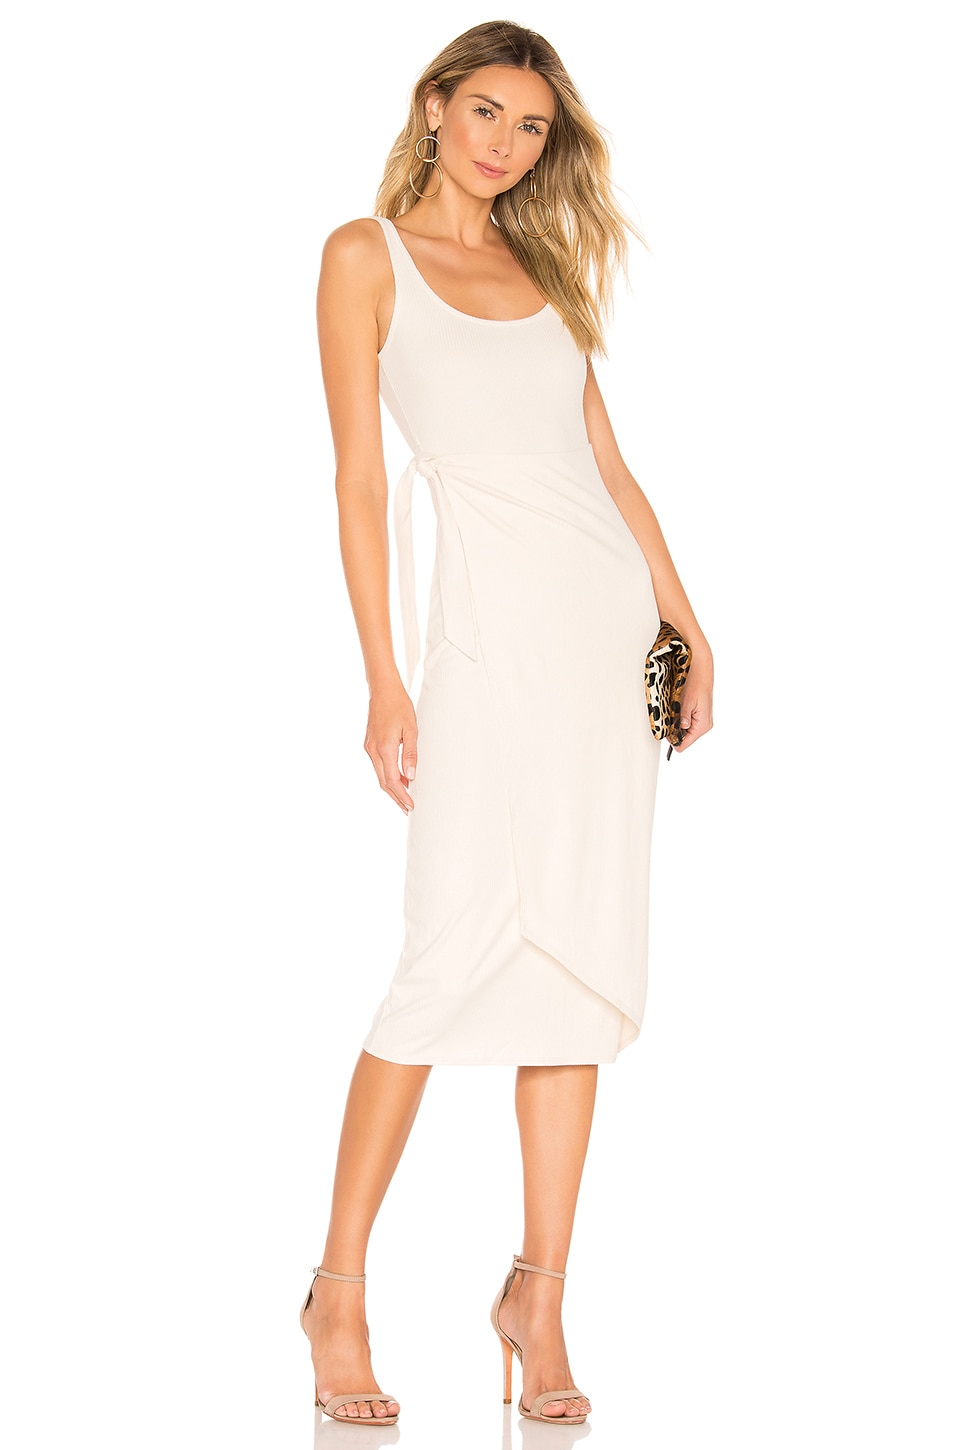 House of Harlow 1960 x REVOLVE Patricia Dress in Ivory